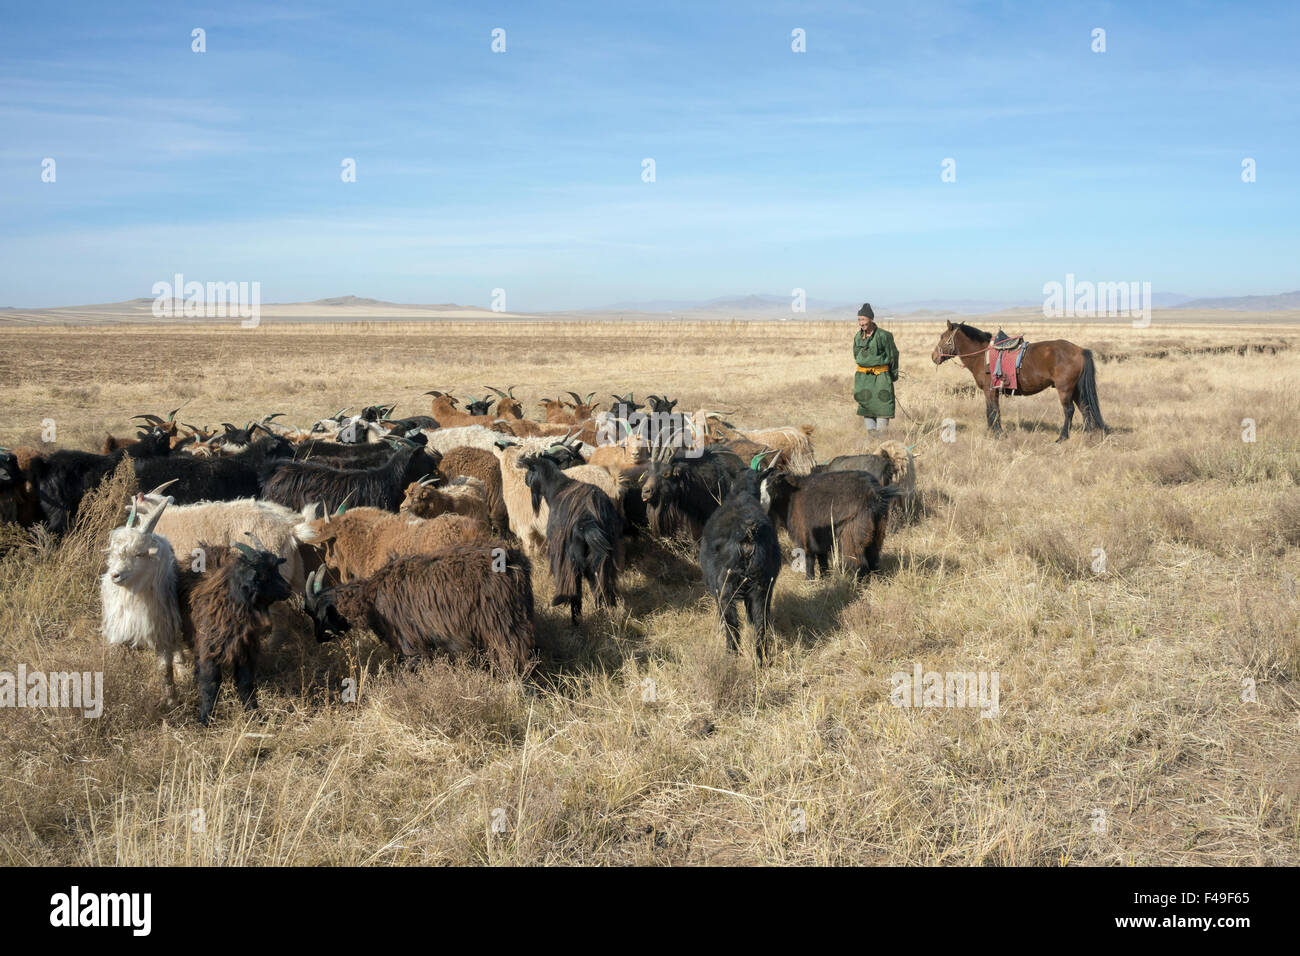 Watching over the flock, Mongolia herder, horse and cashmere goats, near Hustai National Park, Mongolia - Stock Image